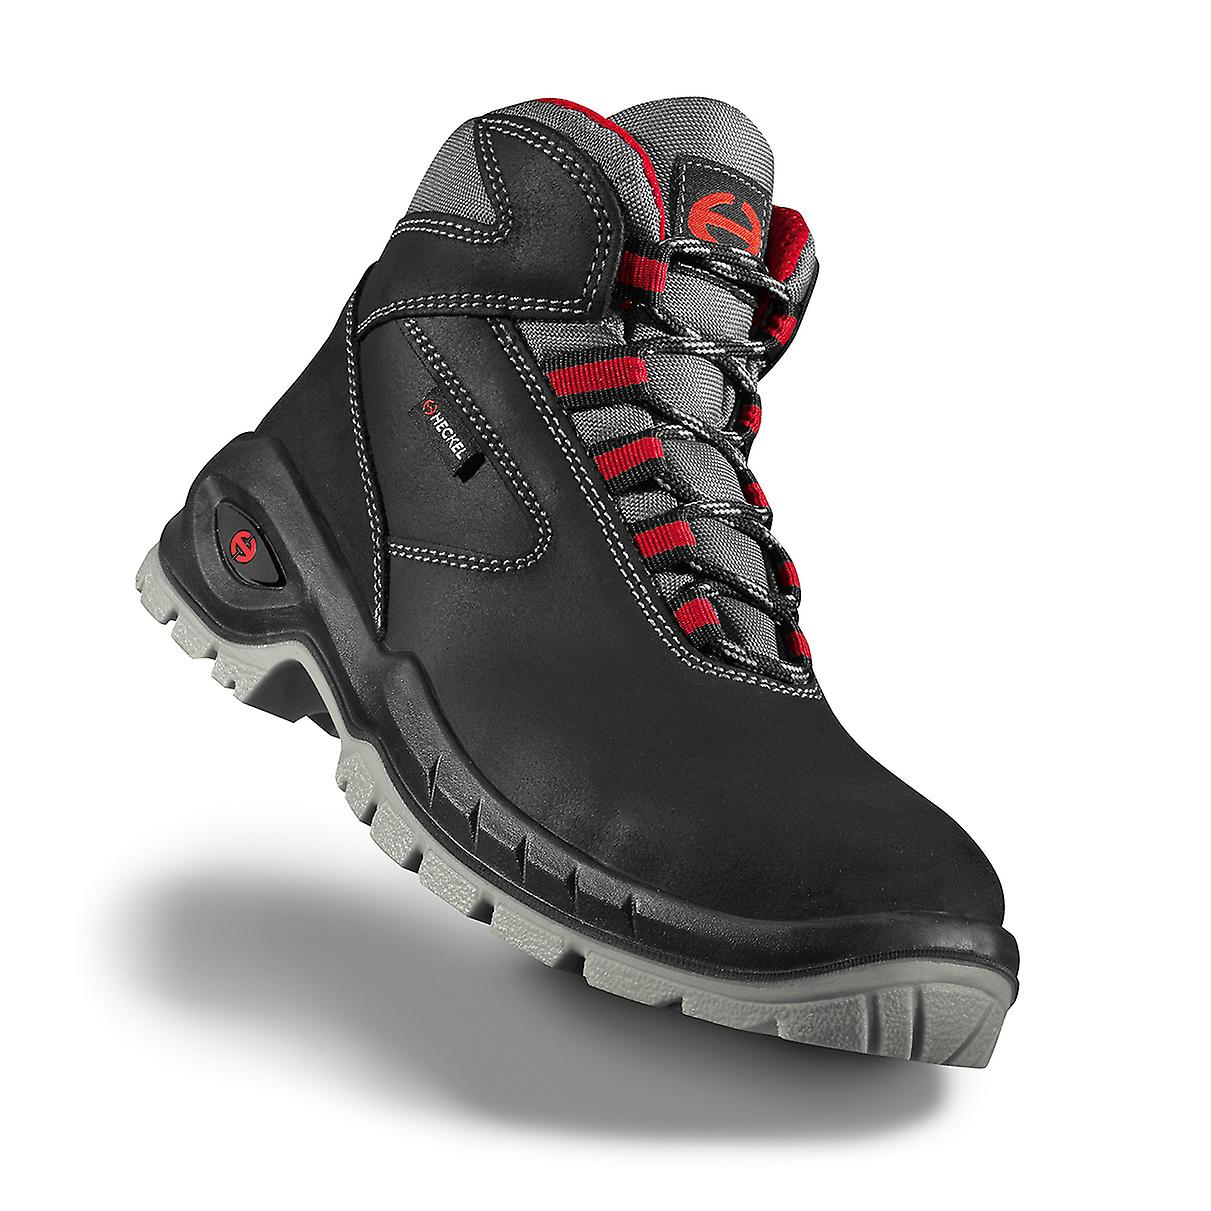 Grey 6263800 Black Red Uvex 11 Size Lightweight Safety Suxxeed Boots S3 qxPUz6a